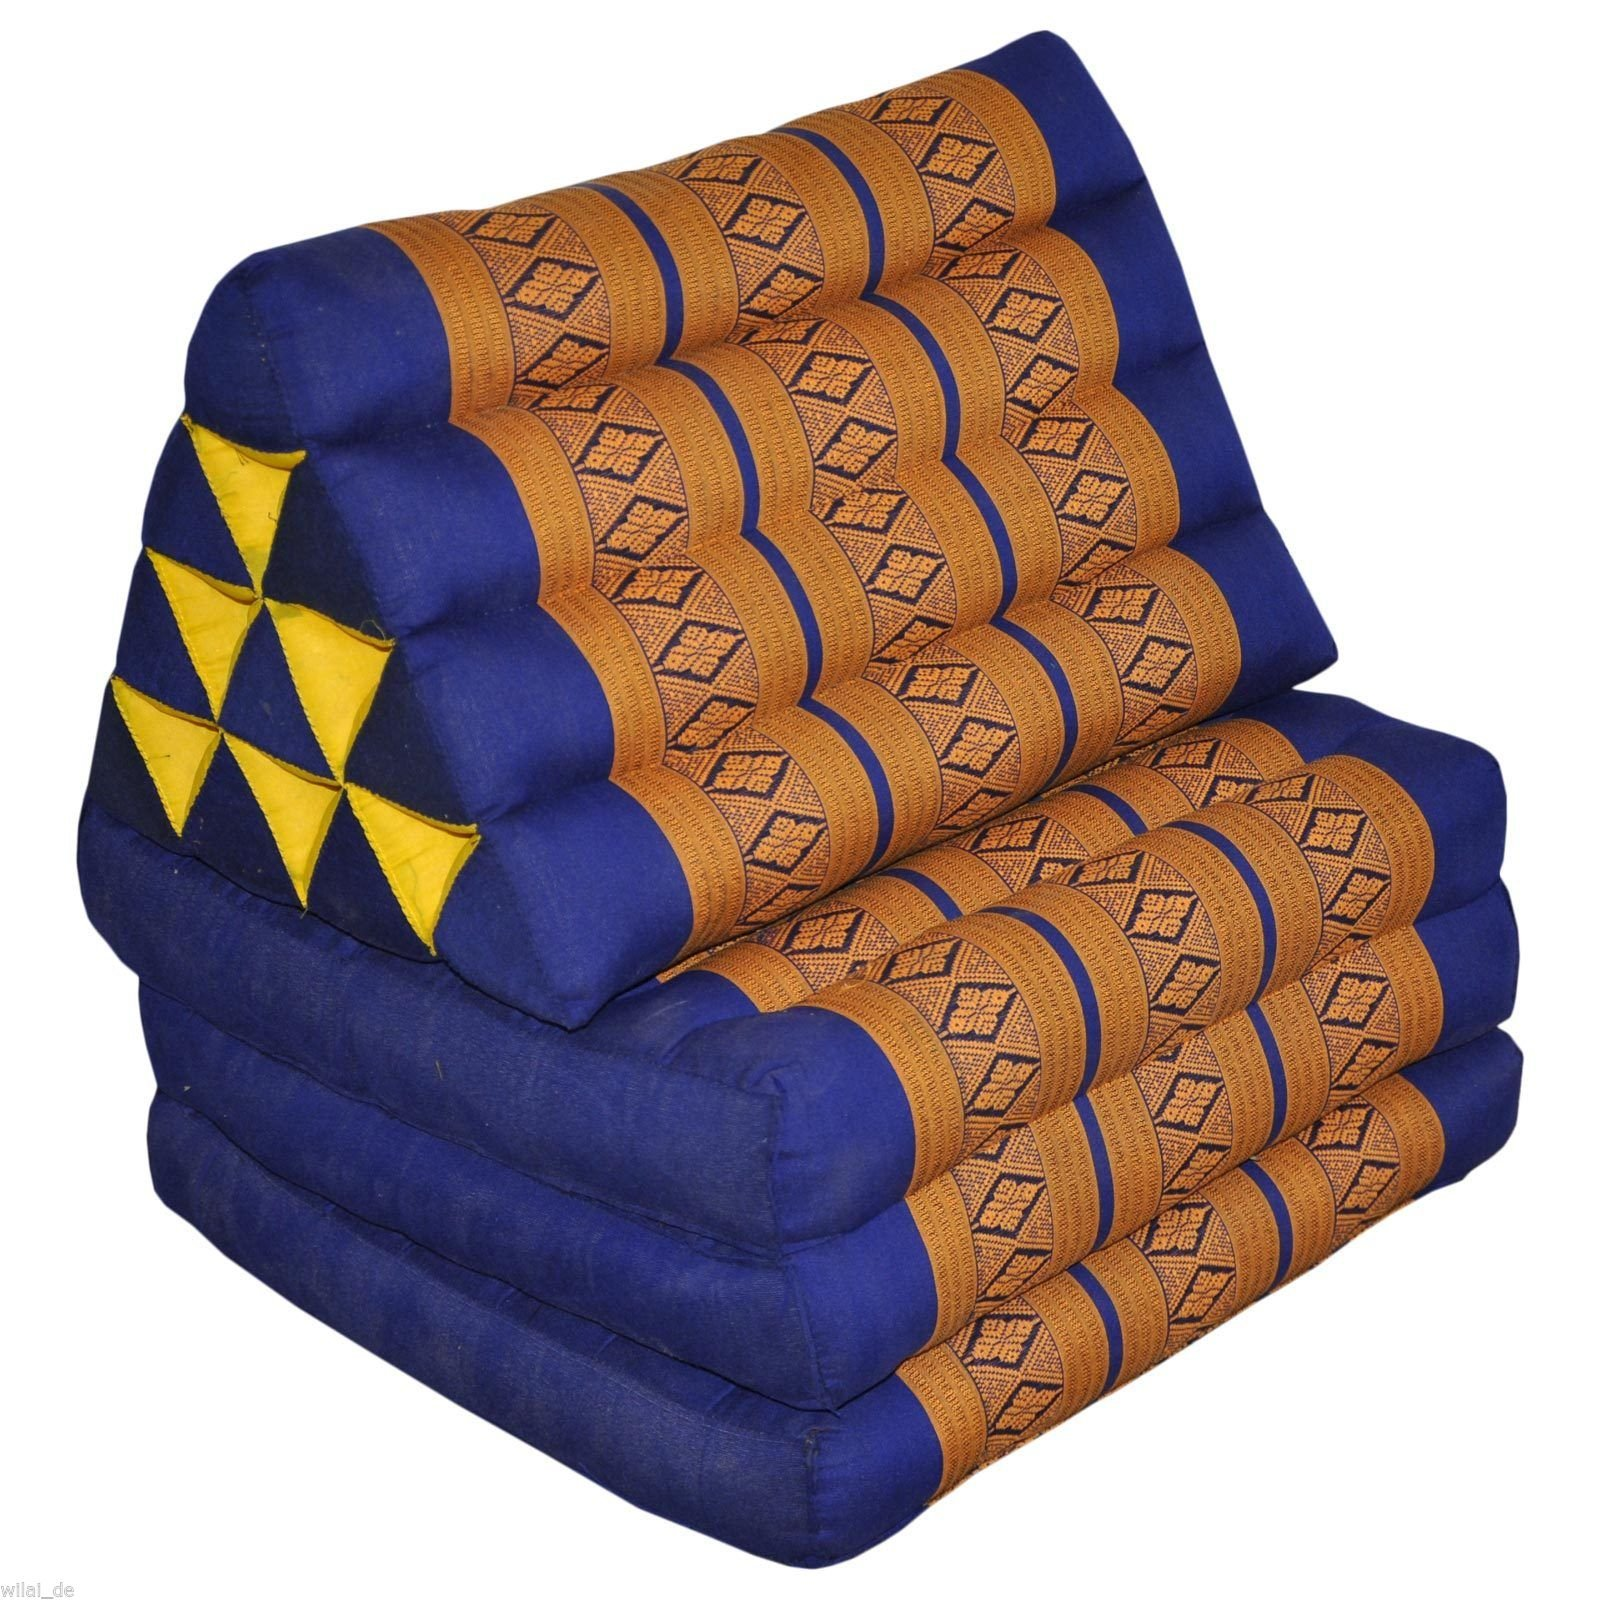 Tungyashop@thai Traditional Cushion 67x21x3 Inches Kapok Mattress (Yellow-Blue, 3 Fold) by NOINOI